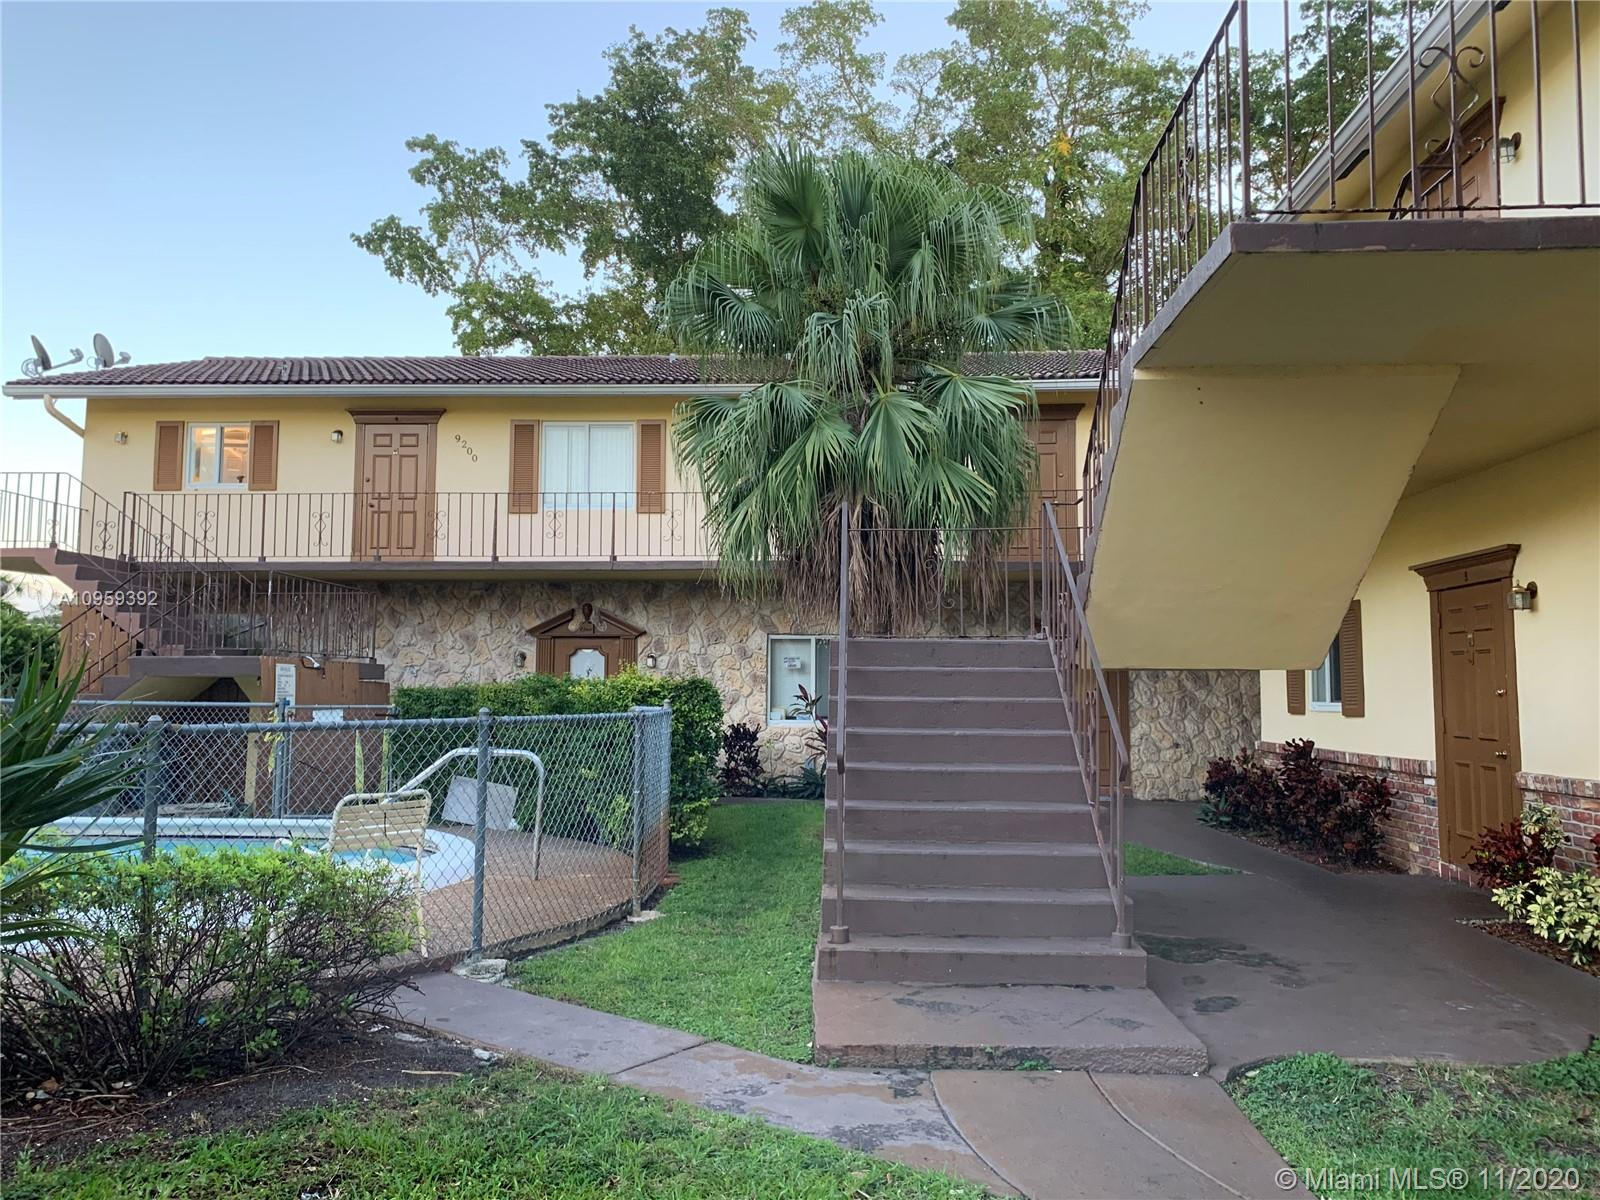 Located in a small, quiet complex, this unit offers lots of privacy, peace and tranquility. Located just minutes away from great schools, shopping centers, and mall. First floor unit entry on a 2 story building allows ease access in and out of your condo. Unit has been converted into a 3/1.  POOL on premises!!